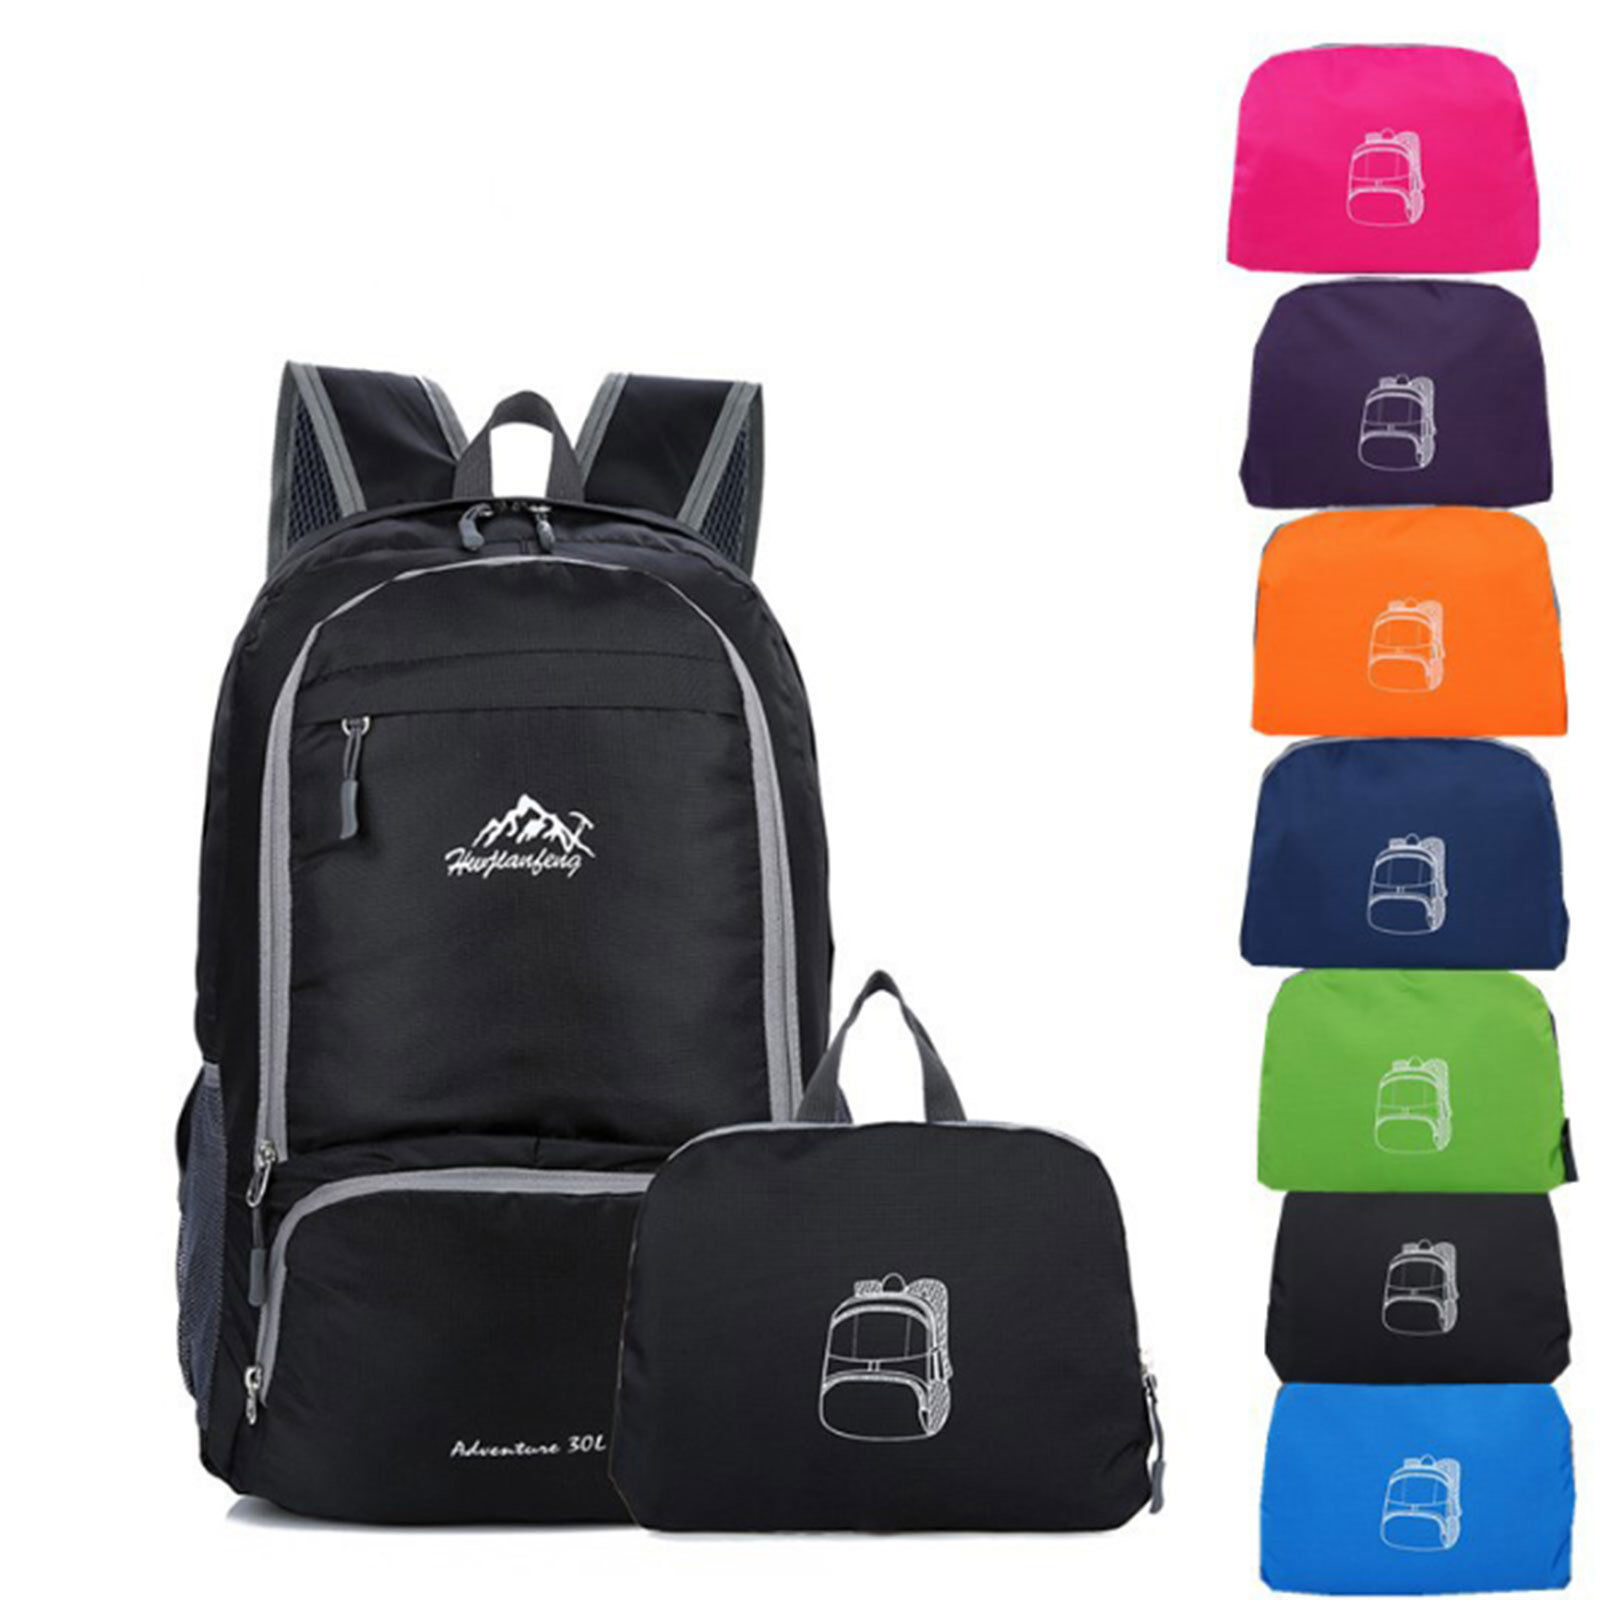 35L Waterproof Sports Backpack Rucksack Bag Outdoor For Travel Hiking Camping